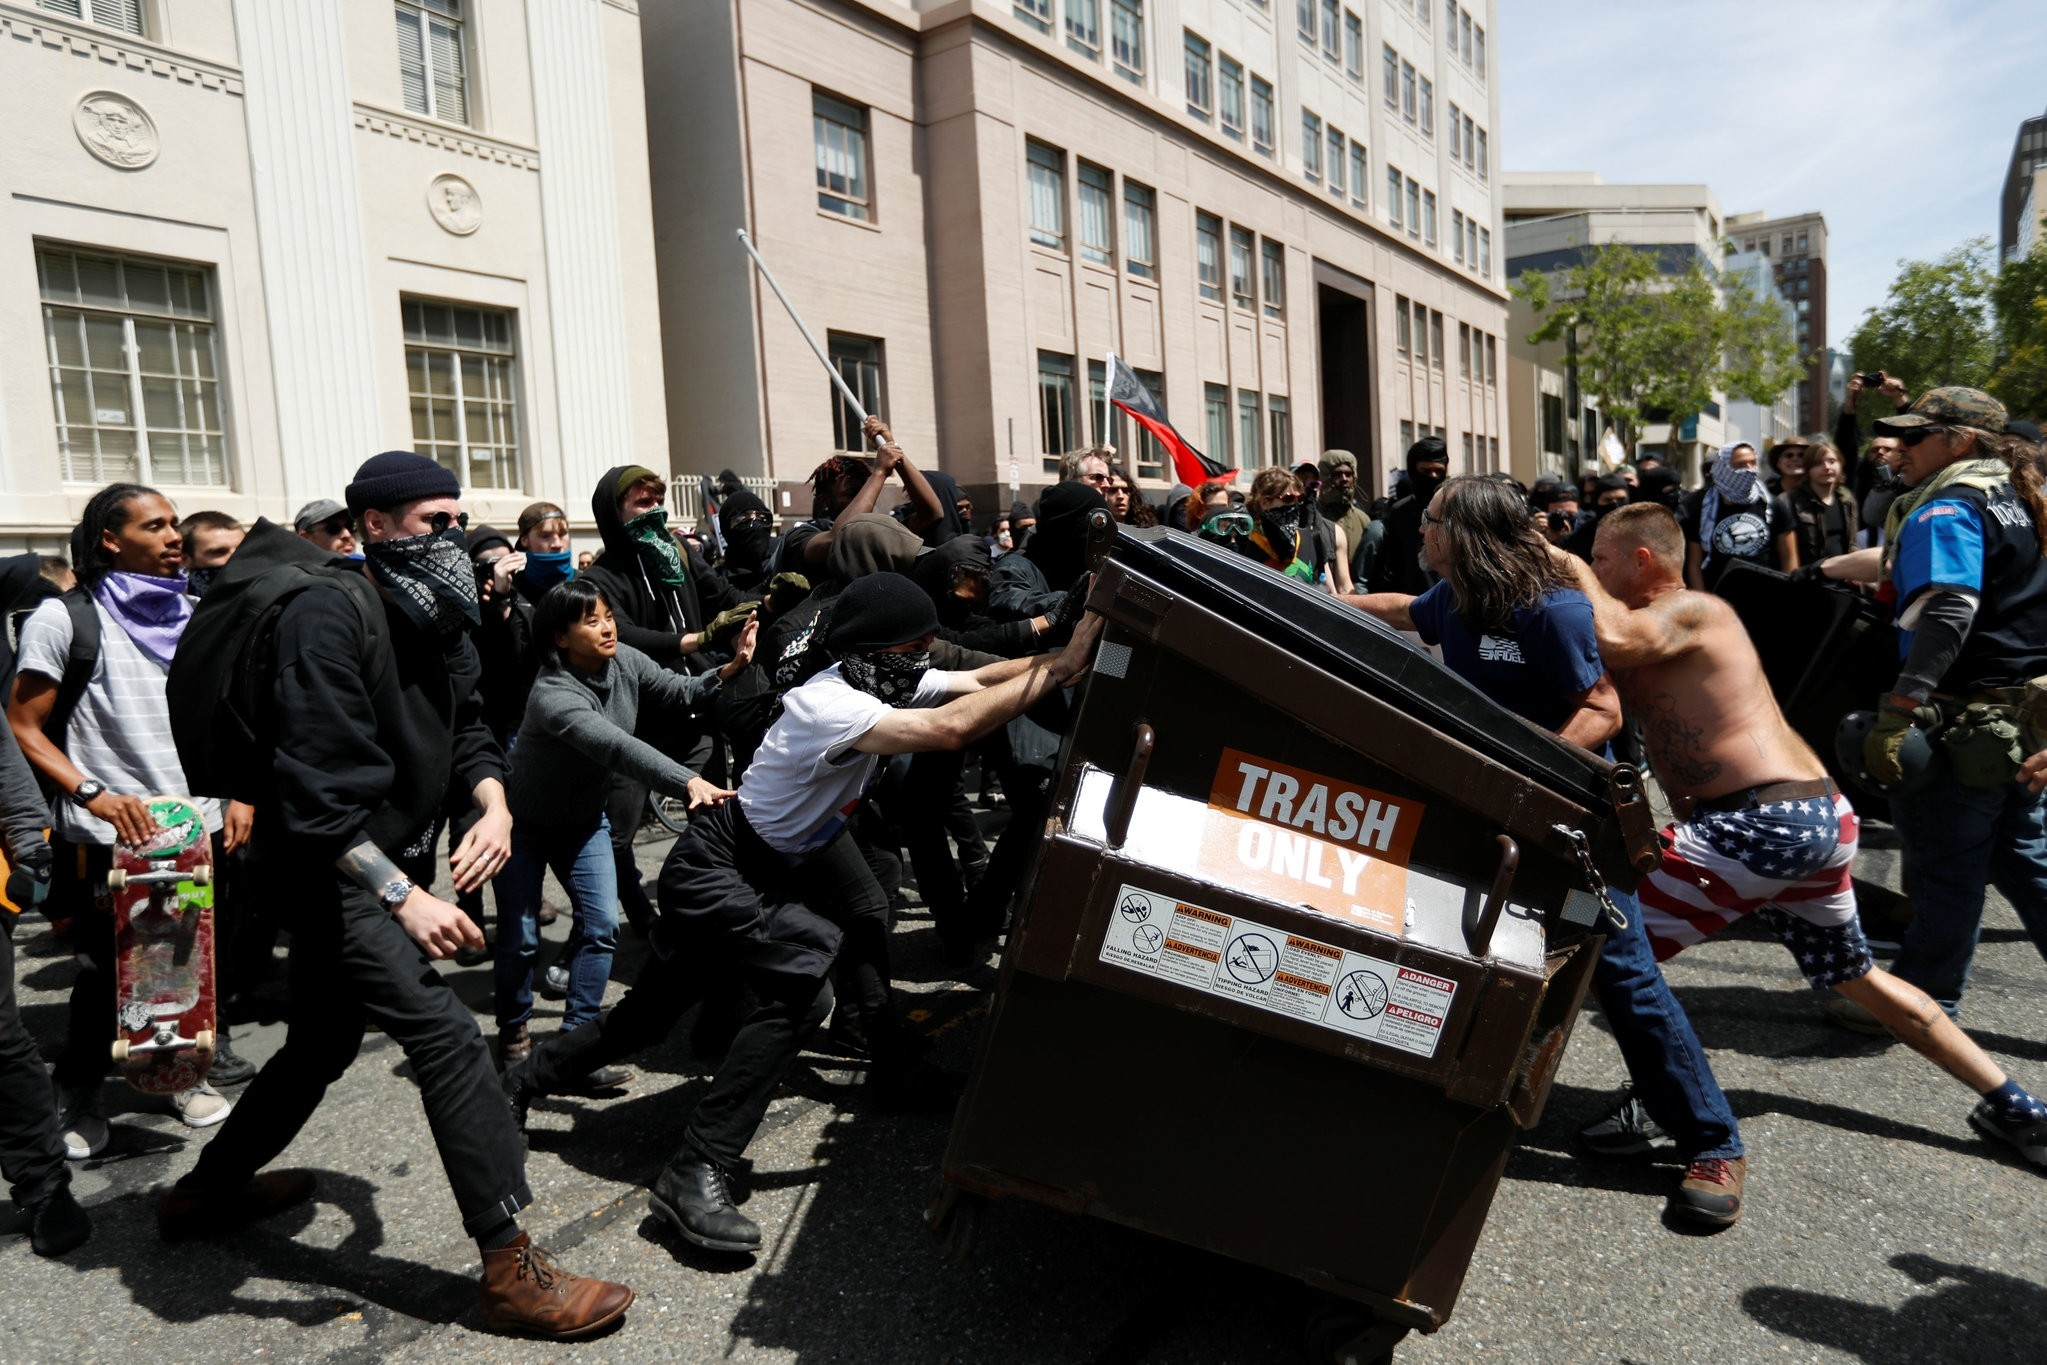 Demonstrators for (R) and against (L) Trump push a garbage container toward each other during a rally in California, U.S., April 15, 2017. (REUTERS Photo)